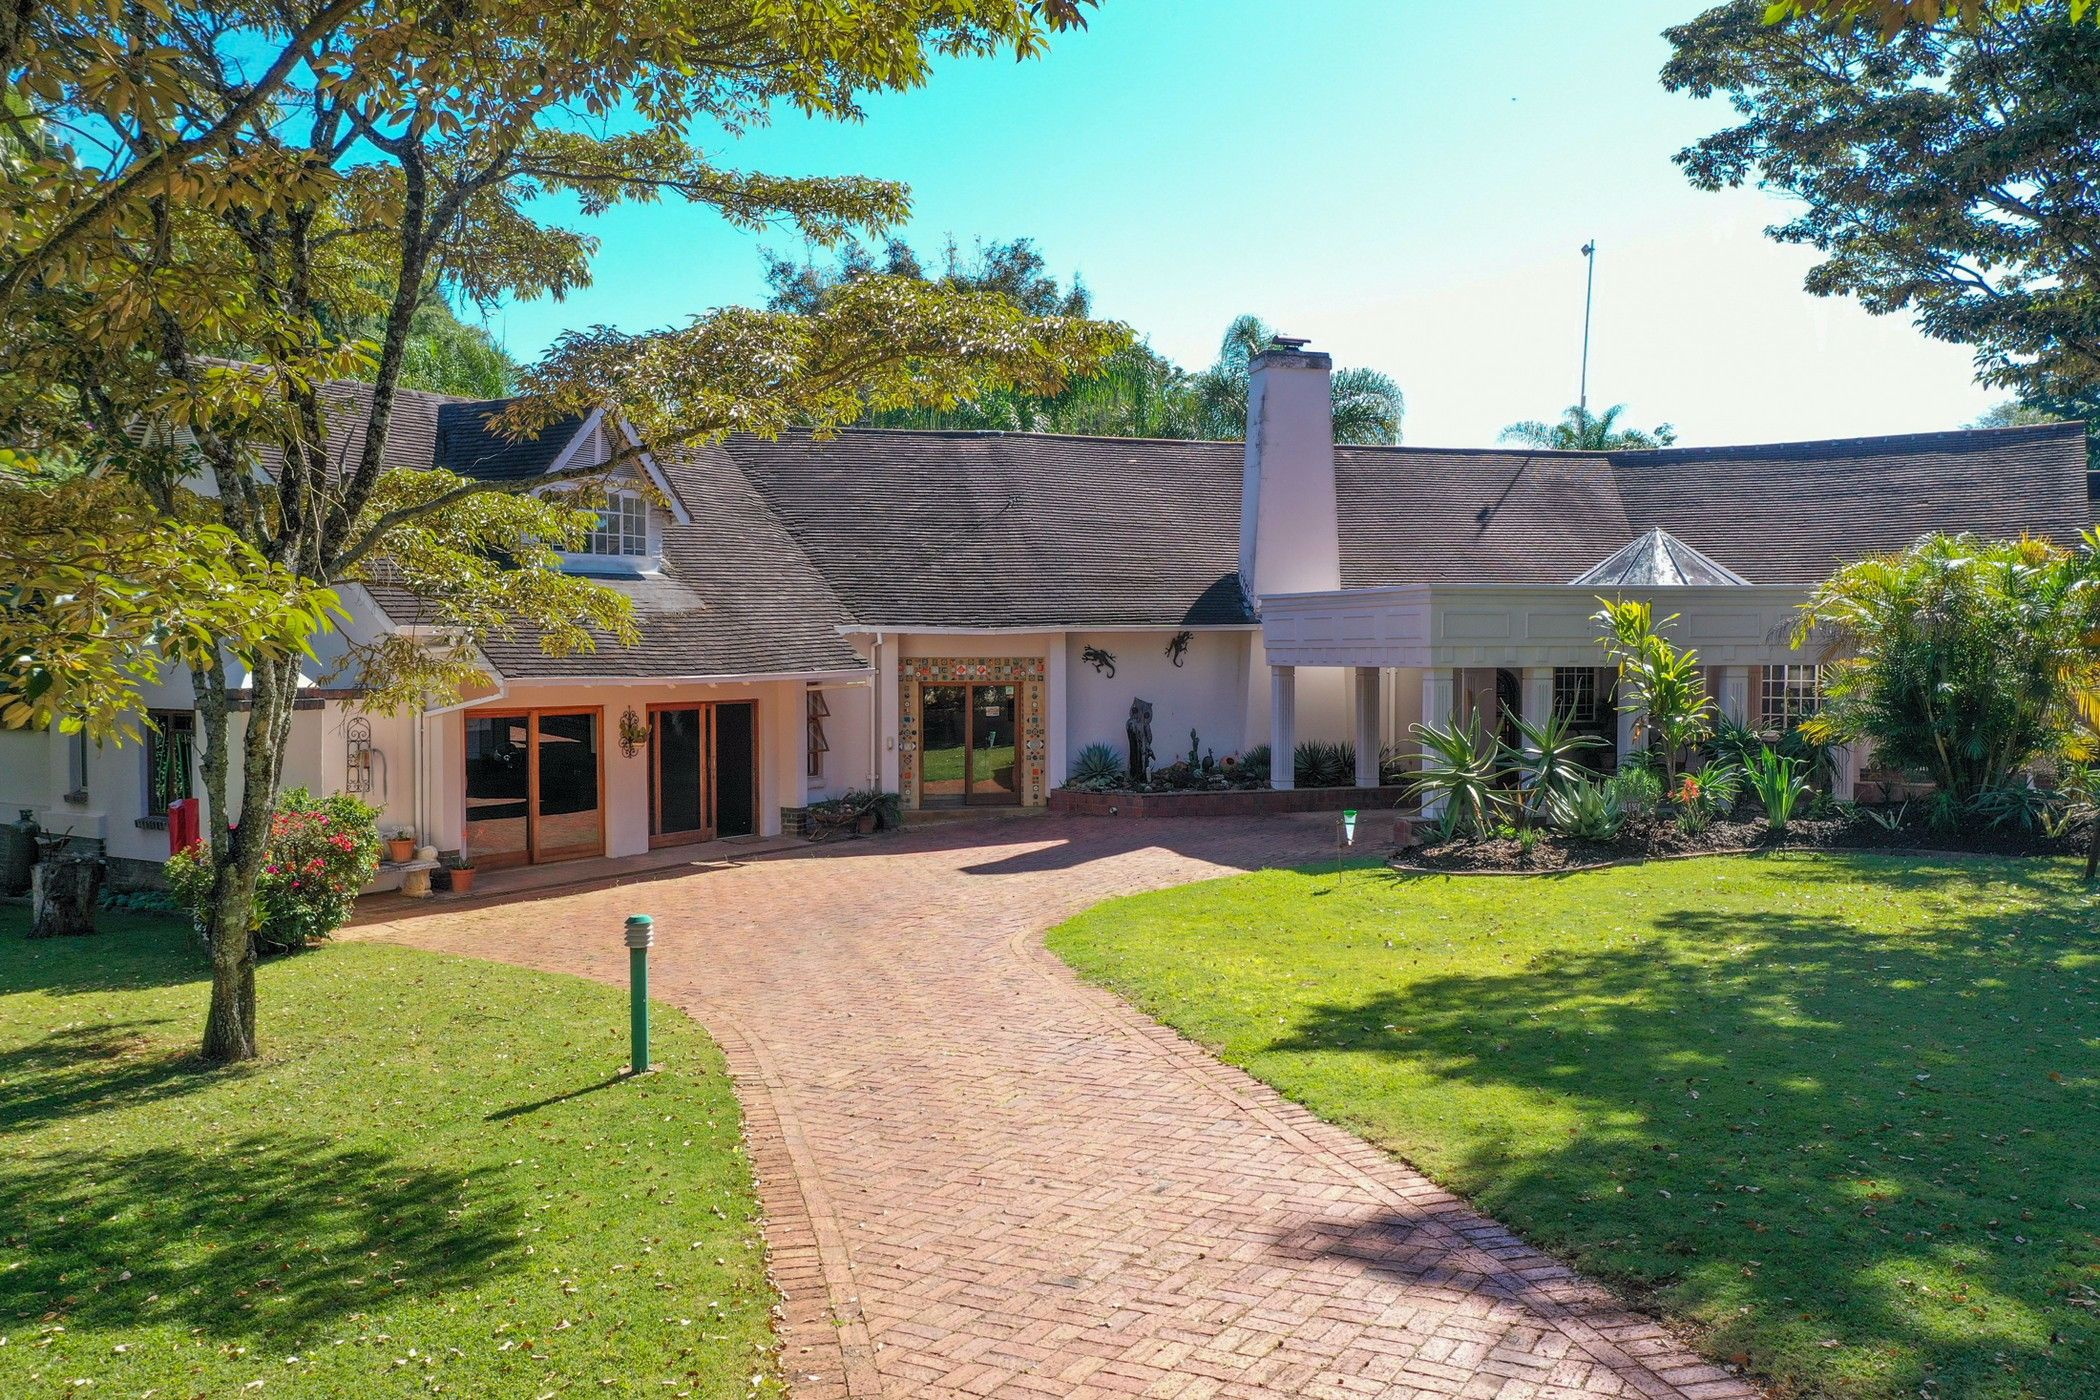 5-star 17 guest room guesthouse for sale in Borrowdale (Zimbabwe)